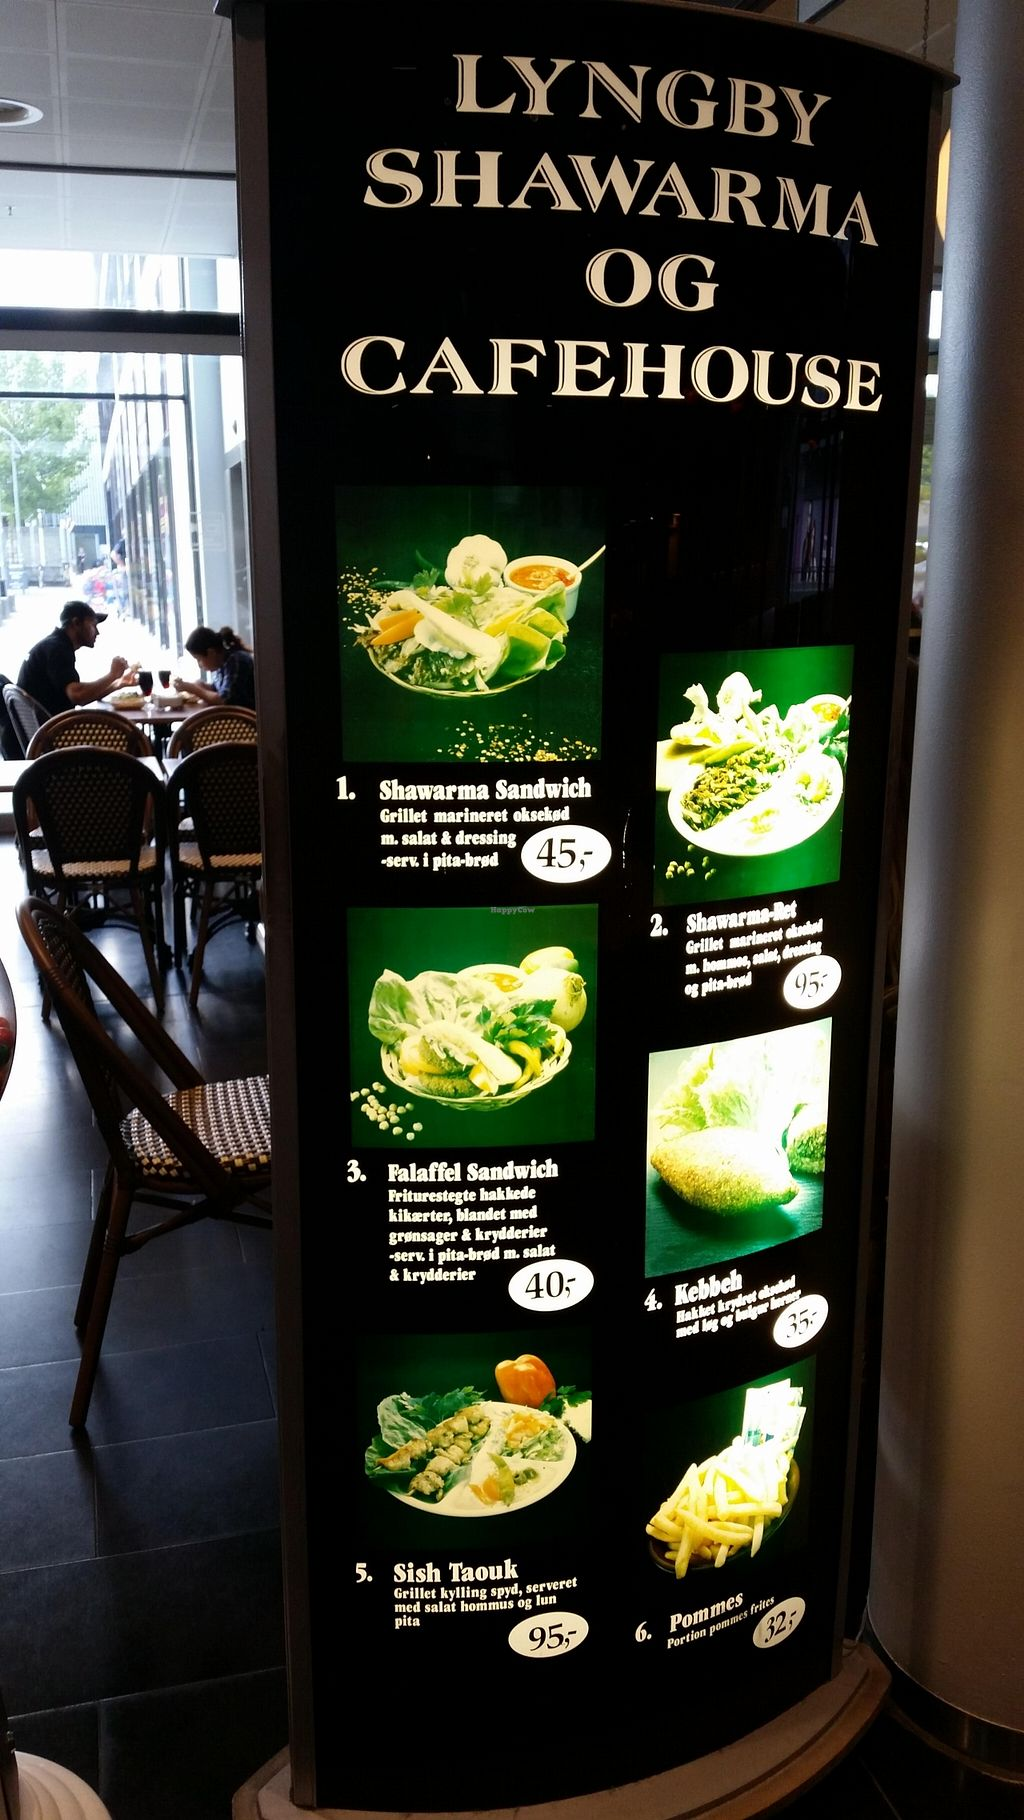 """Photo of Lyngby Shawarma House  by <a href=""""/members/profile/konlish"""">konlish</a> <br/>Outside menu board <br/> September 29, 2015  - <a href='/contact/abuse/image/64005/119547'>Report</a>"""